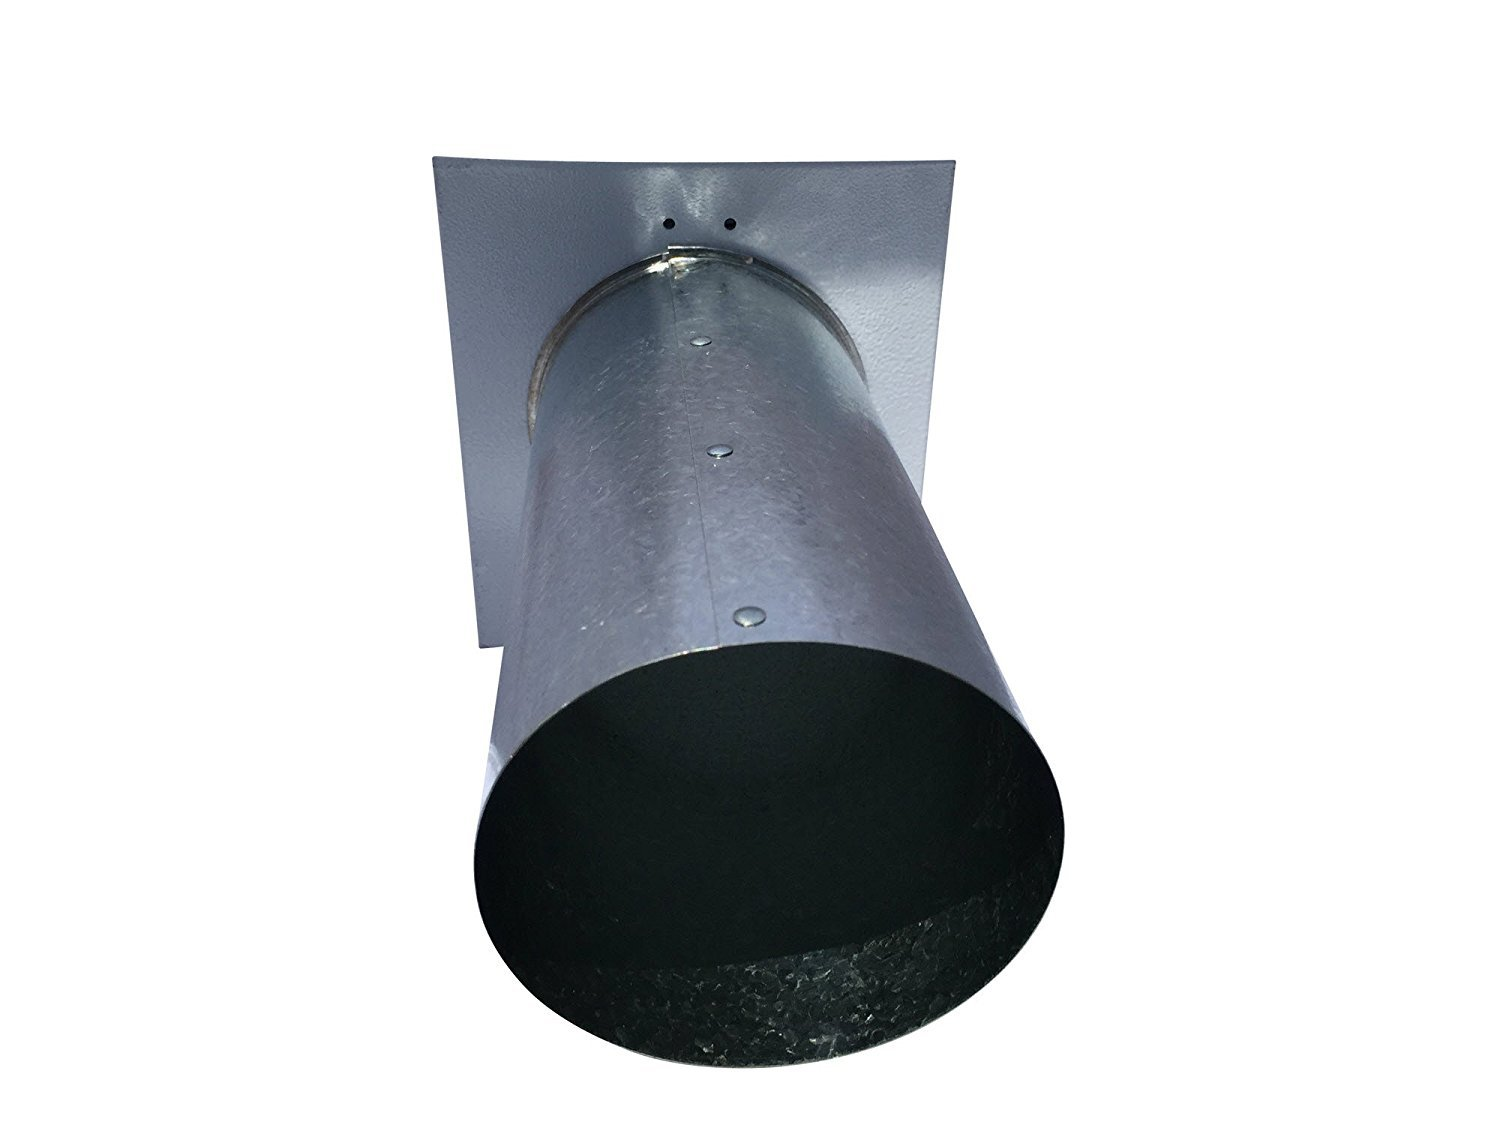 4 Inch Wall Vent Painted White Screen Only (4 Inch diameter) - Vent Works by Vent Works (Image #2)